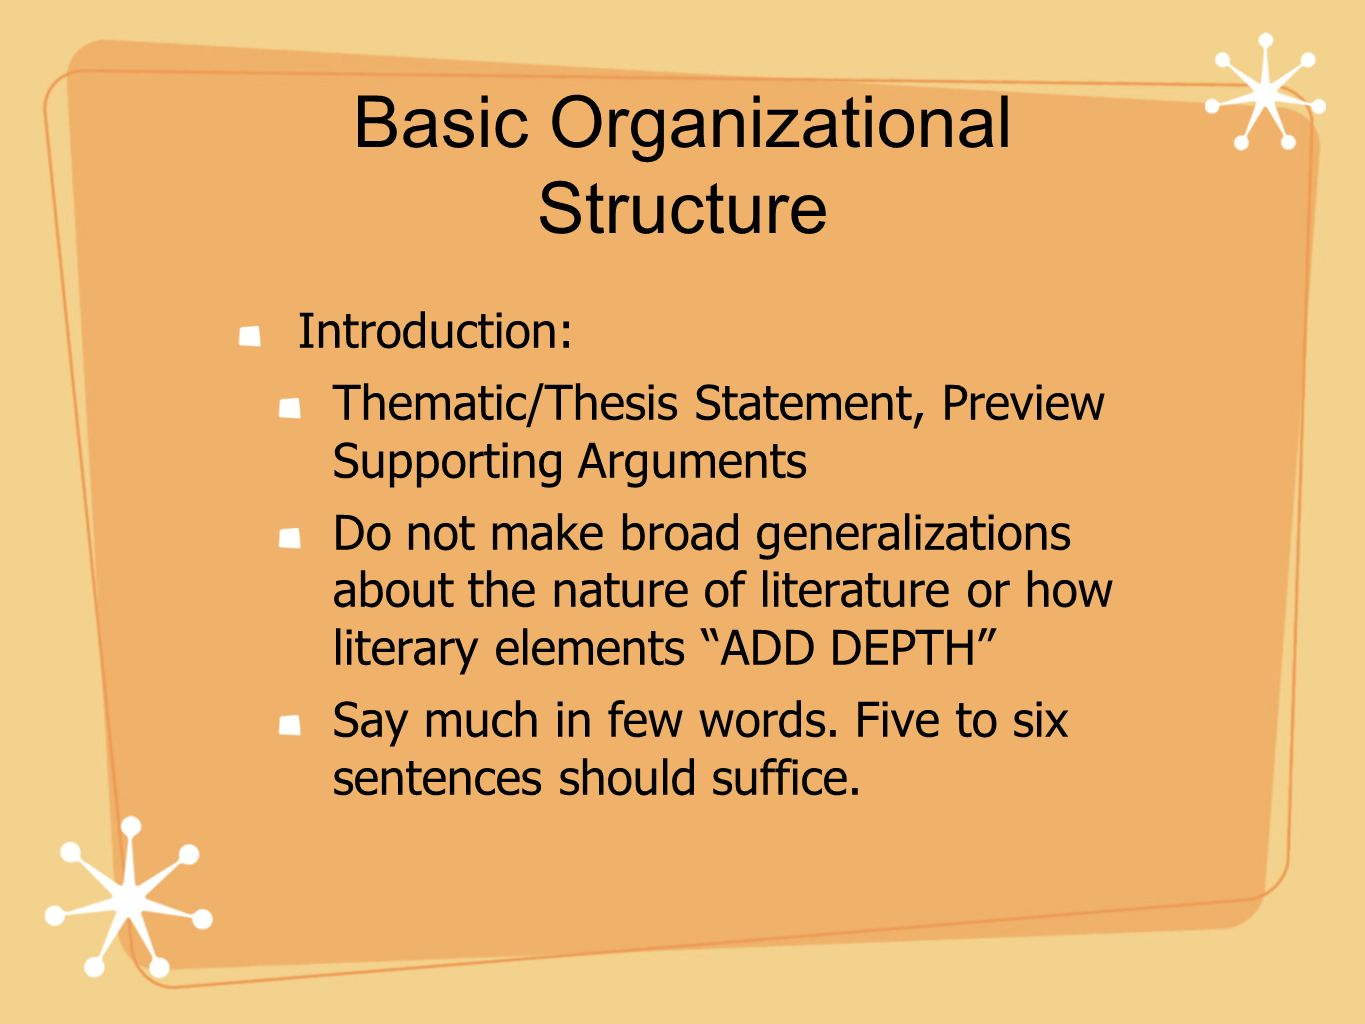 Basic Organizational Structure Introduction: Thematic/Thesis Statement, Preview Supporting Arguments Do not make broad generalizations about the natur